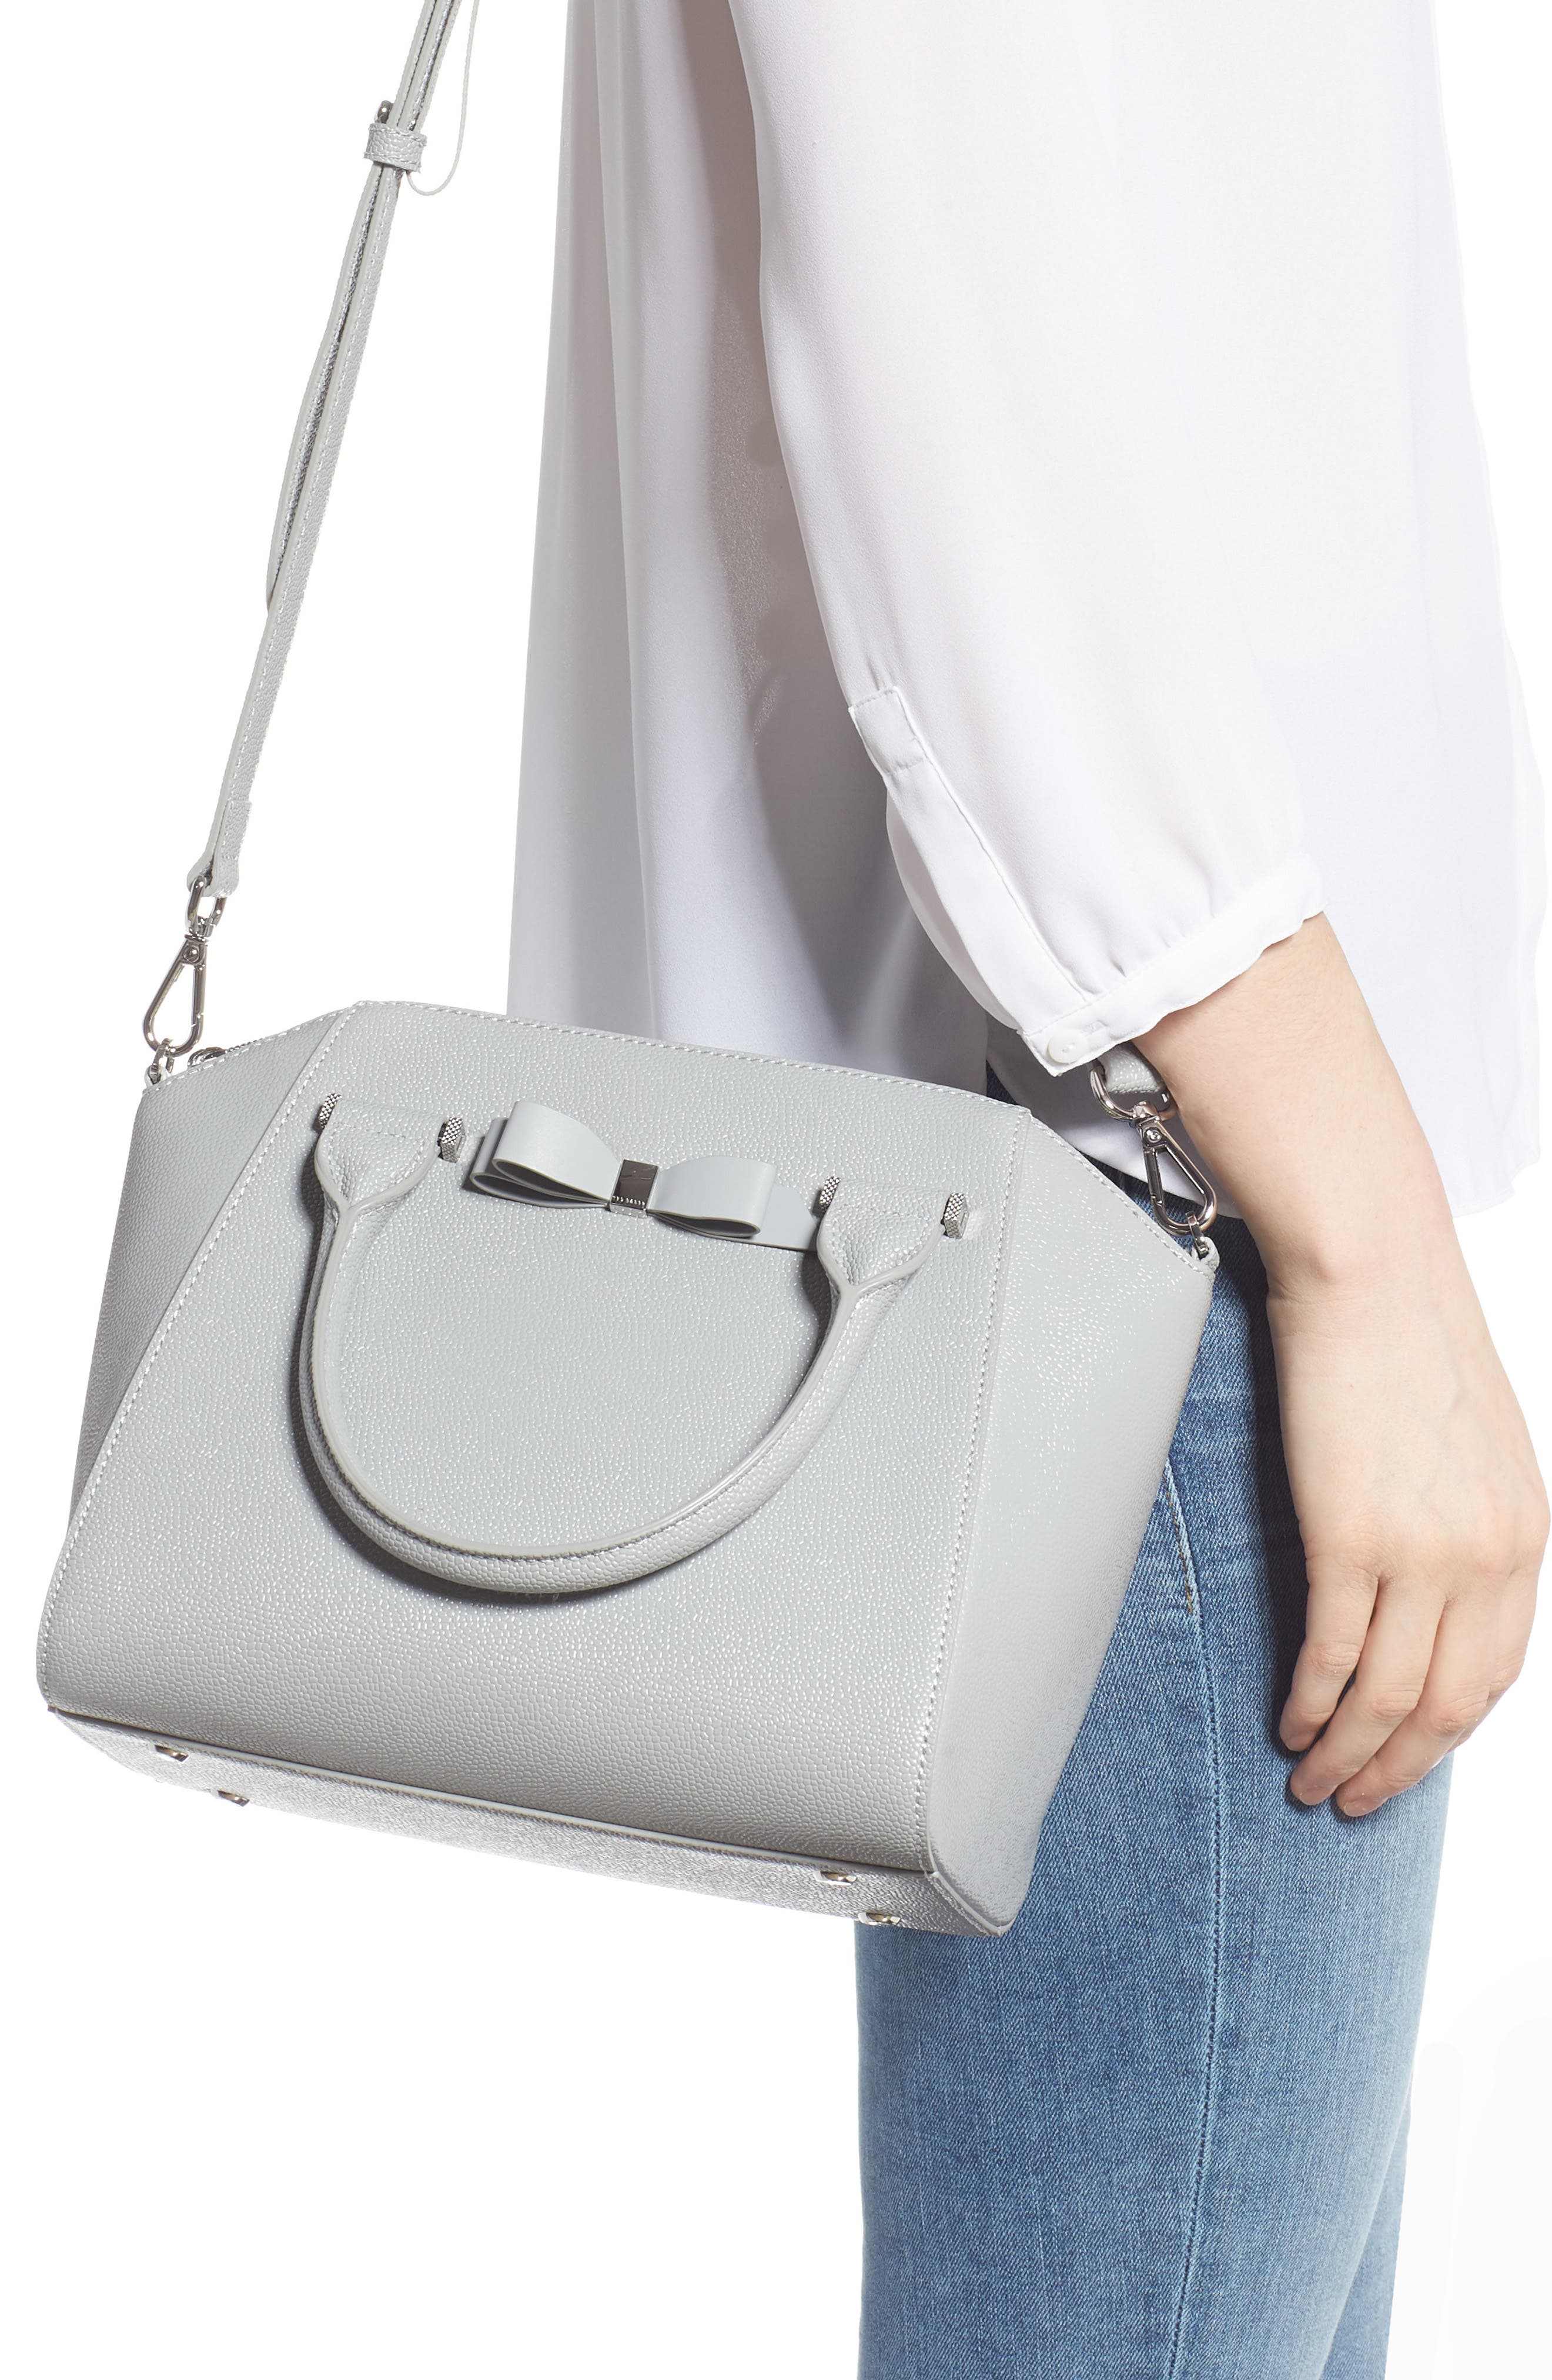 TED BAKER LONDON,                             Janne Bow Leather Tote,                             Alternate thumbnail 2, color,                             GREY